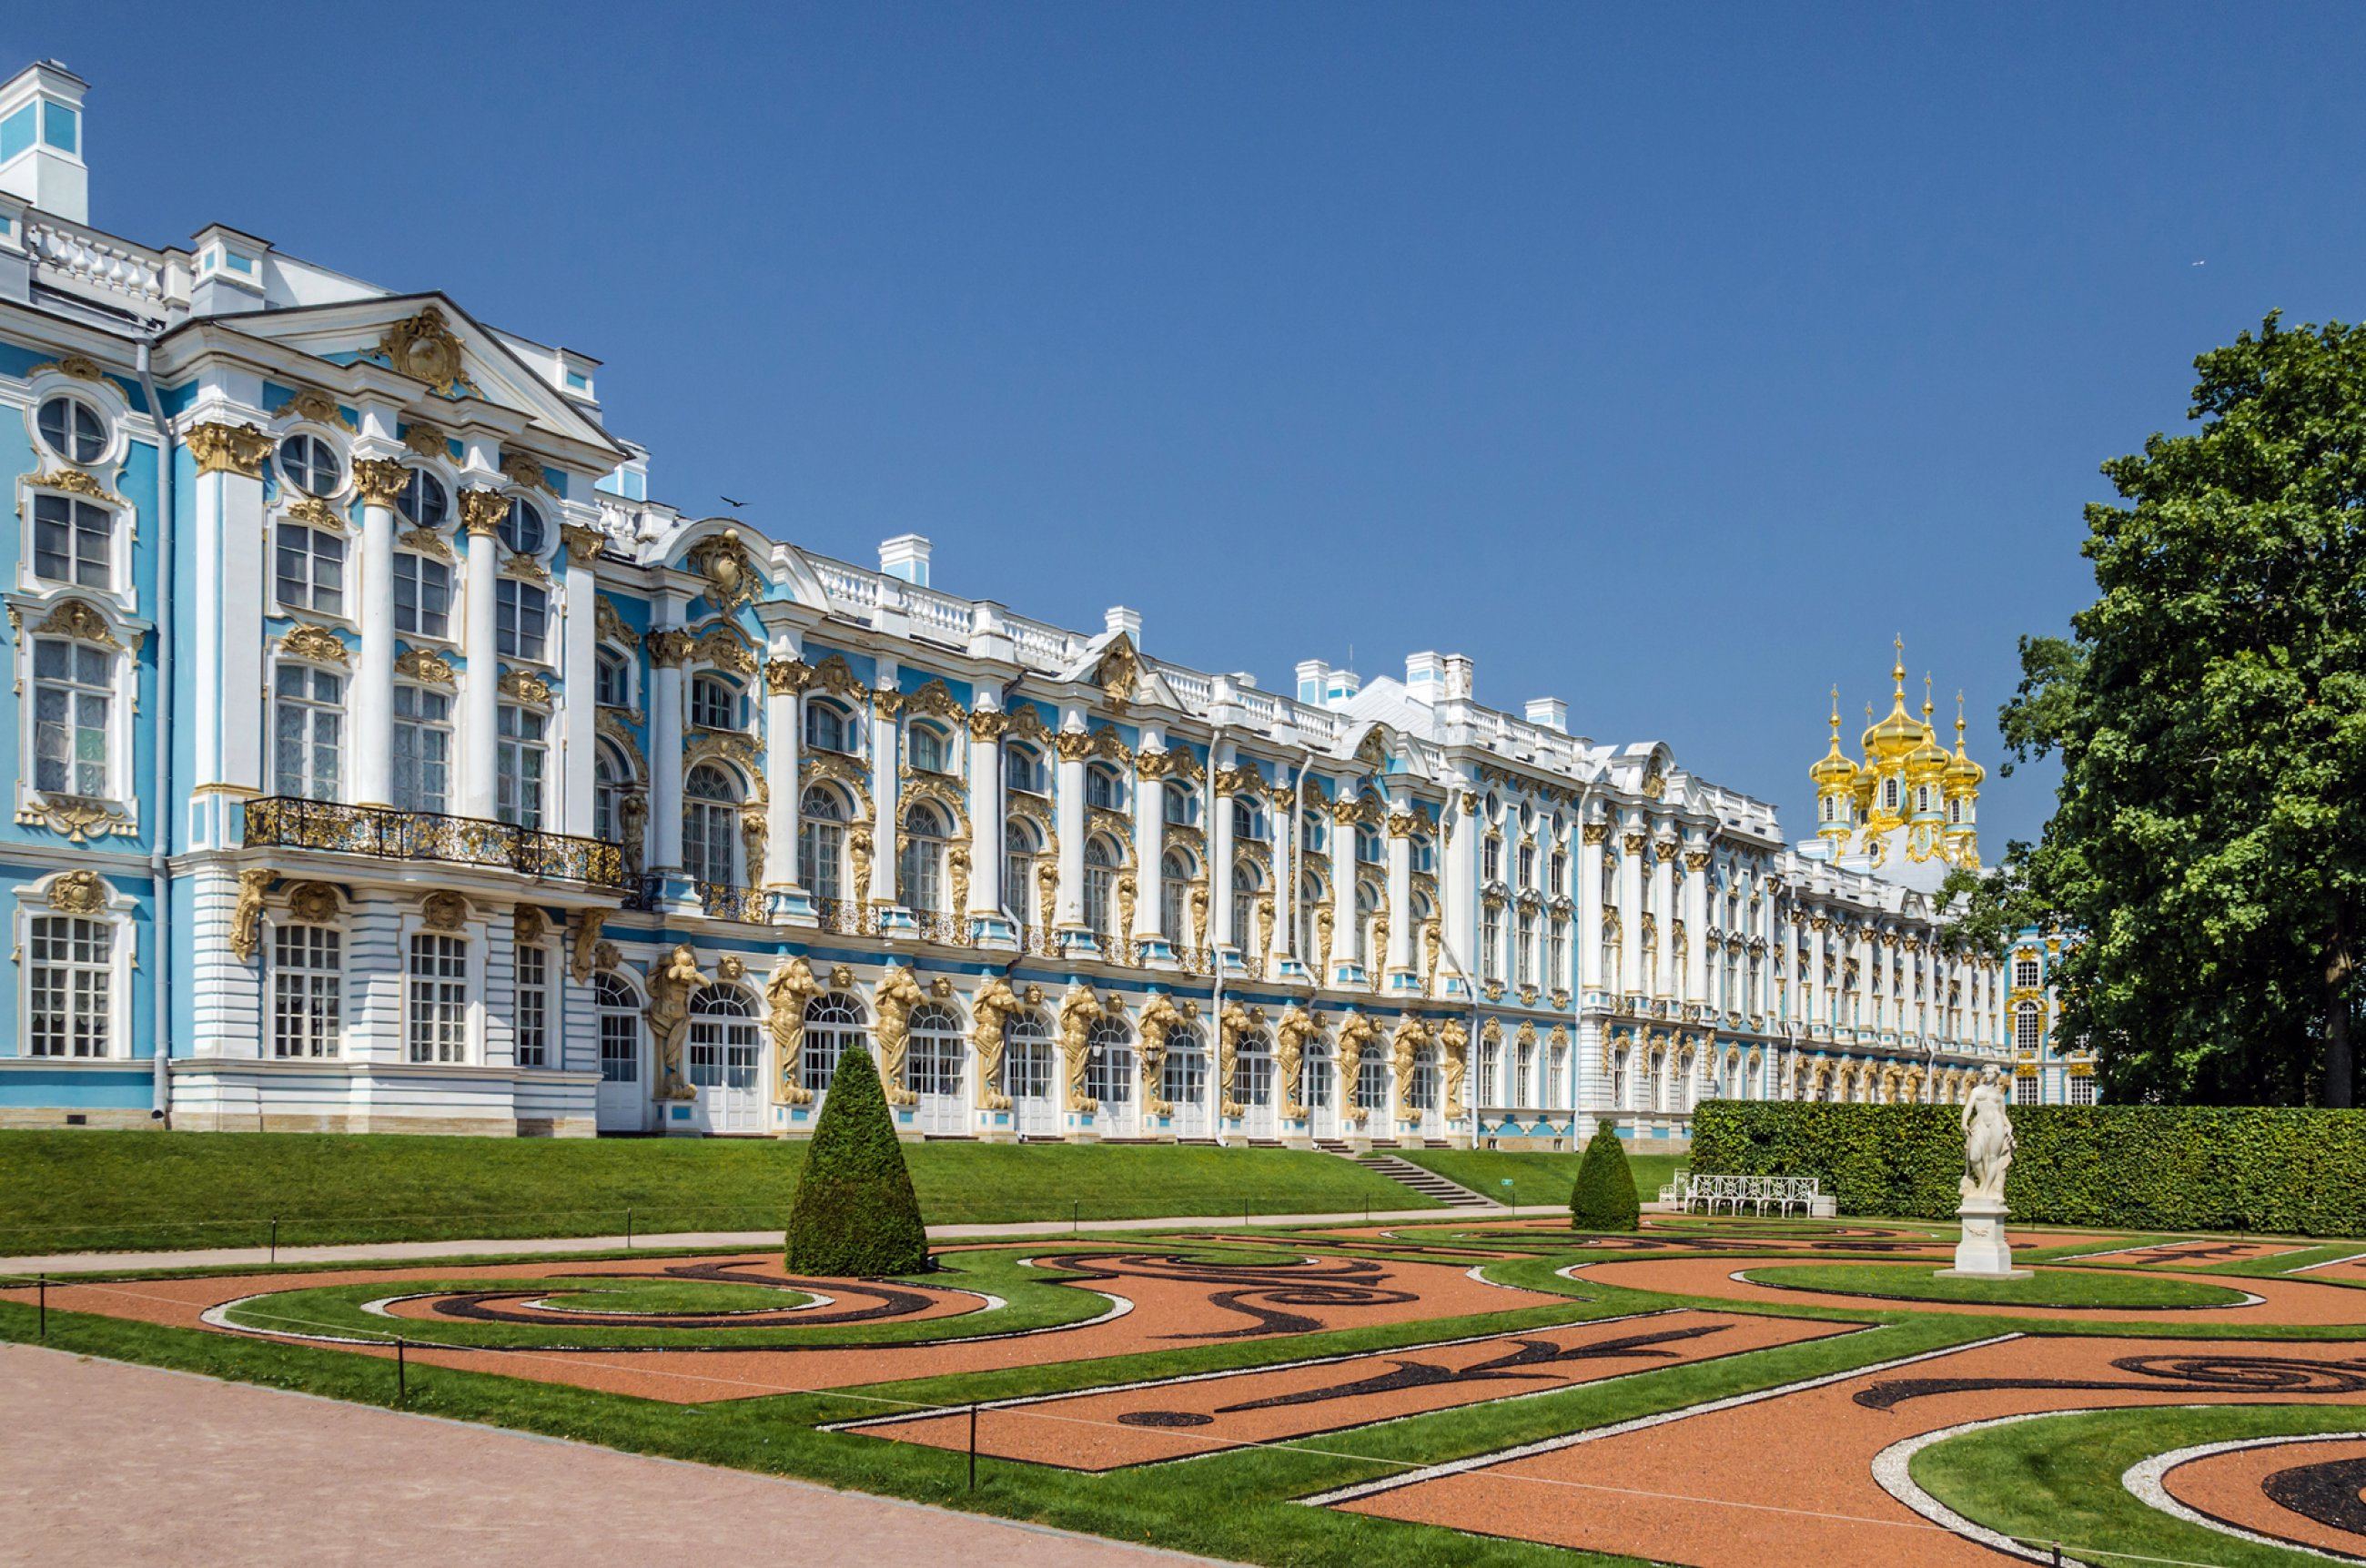 https://bubo.sk/uploads/galleries/16268/wikipedia-catherine-palace-in-tsarskoe-selo.jpg